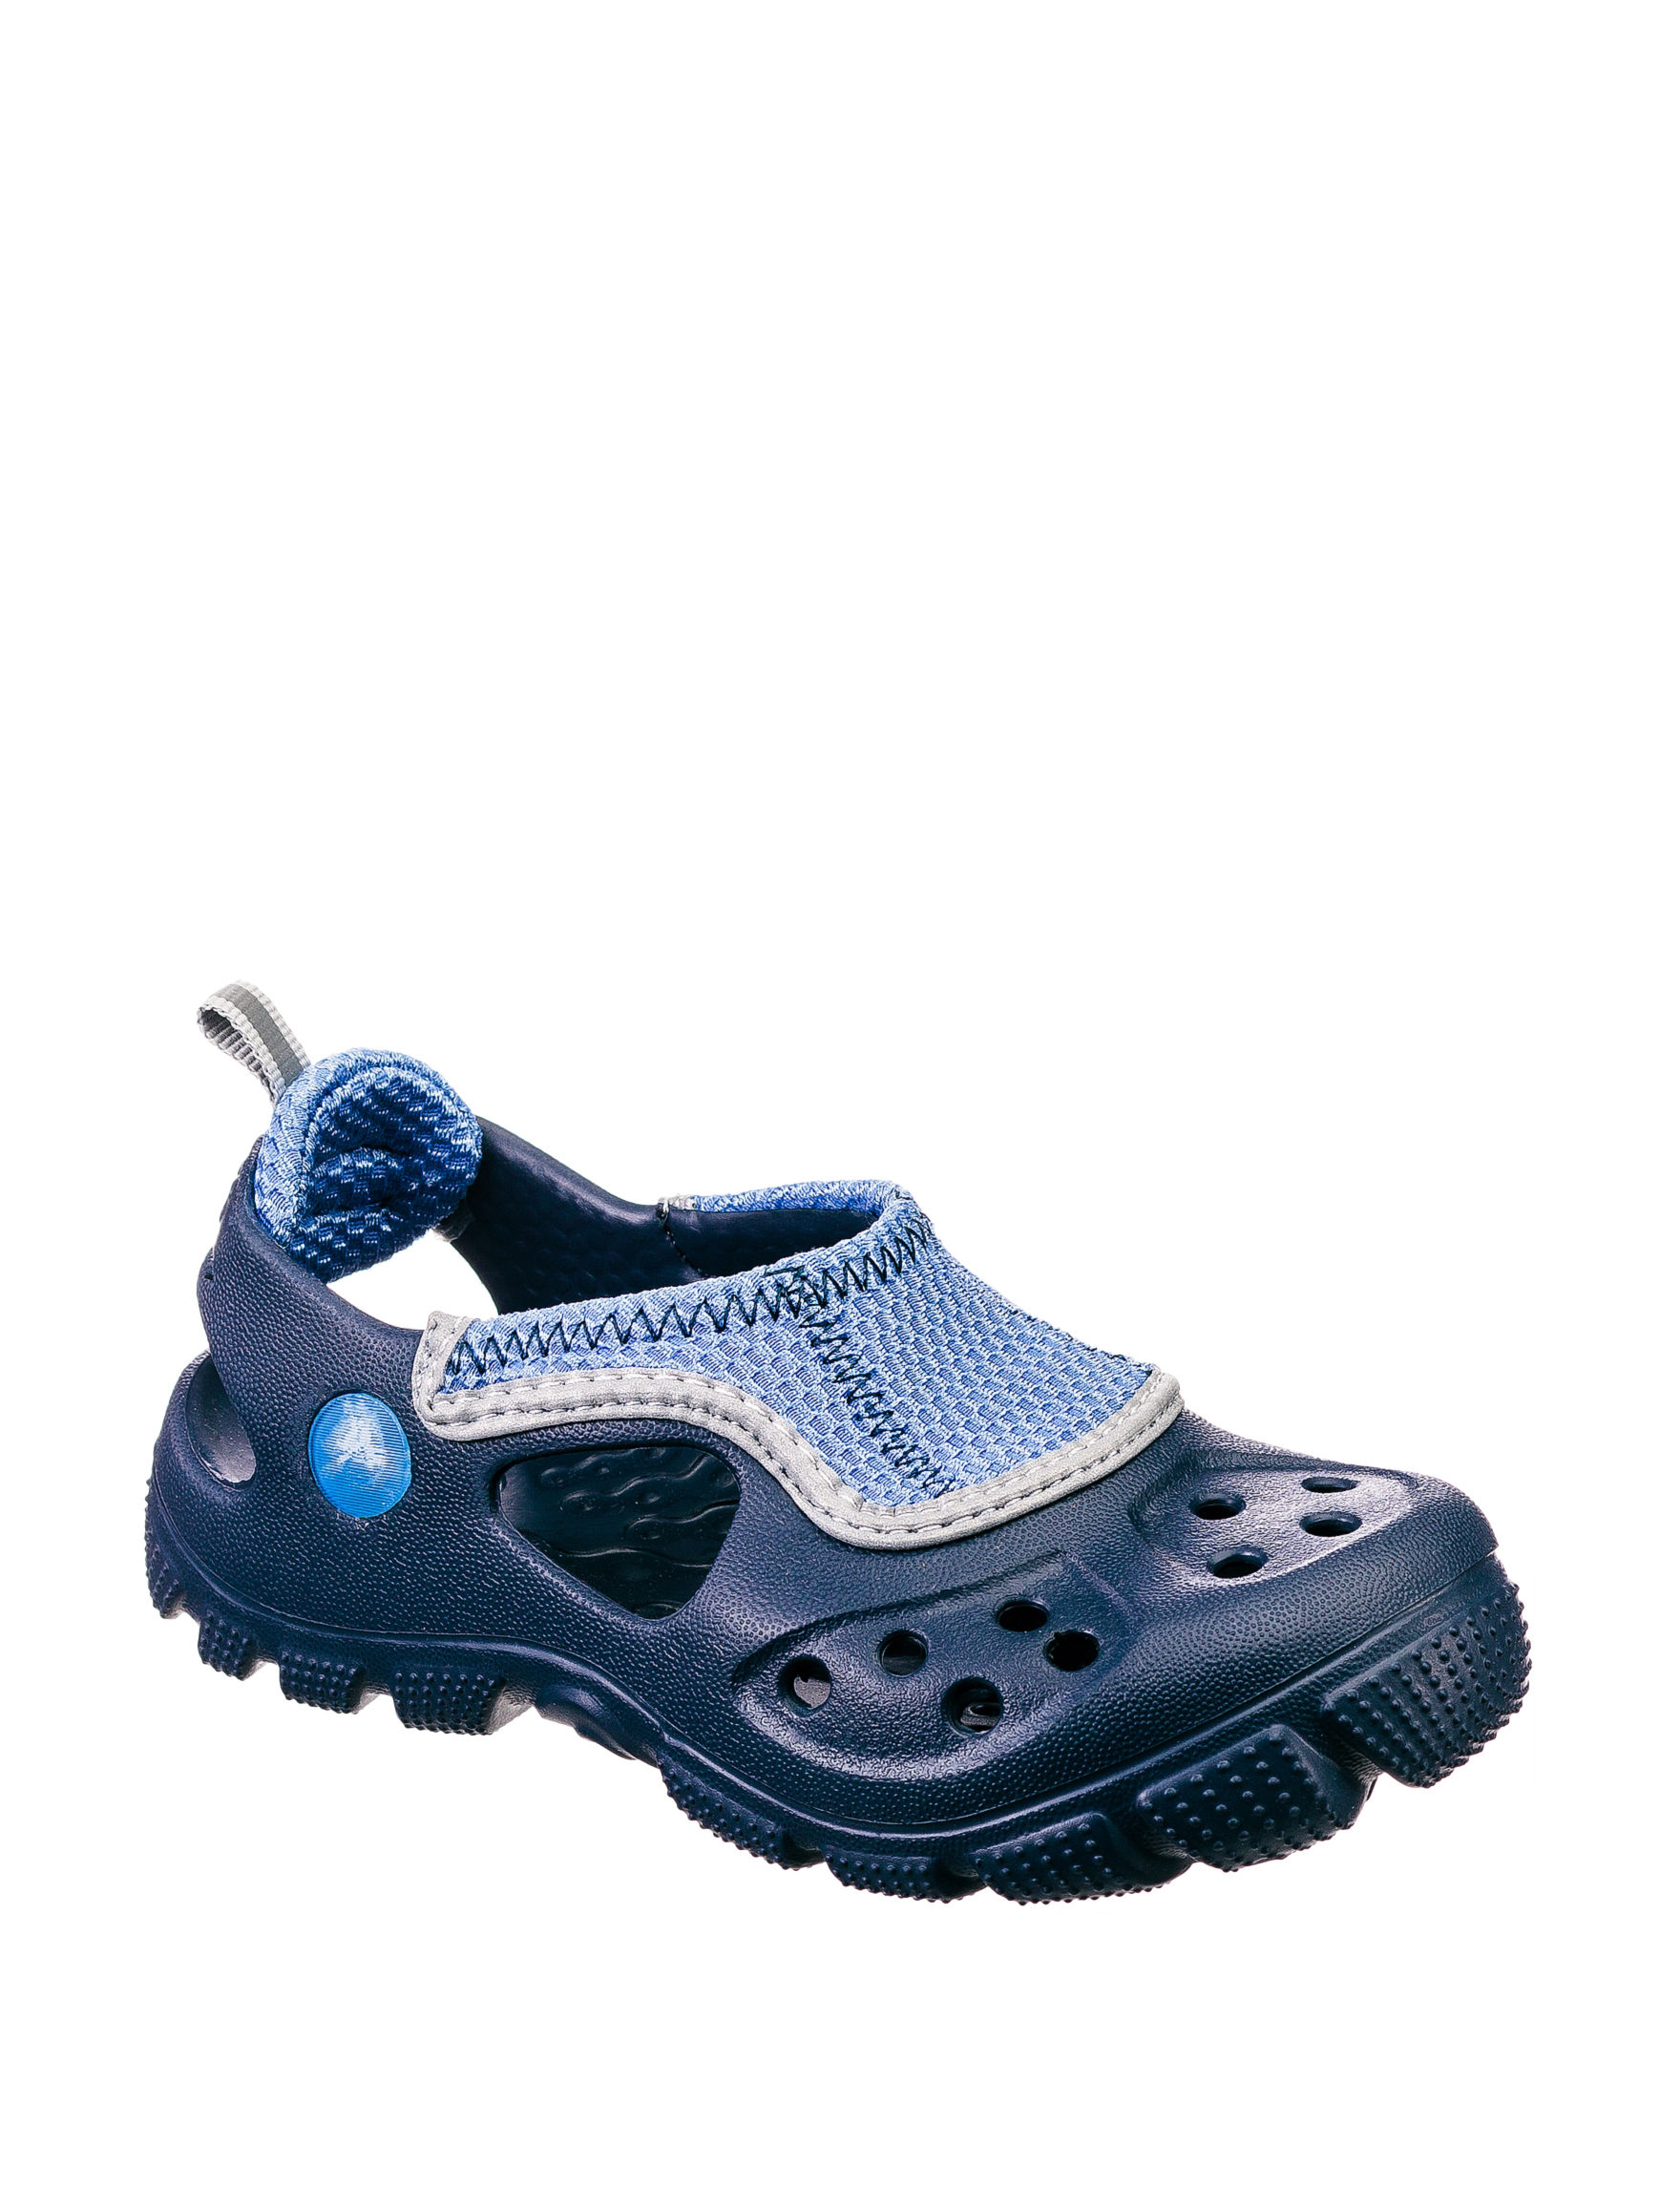 ce188f56cf8029 ... UPC 887350003116 product image for Crocs Micah II Clogs - Toddler Boys  6-13 ...